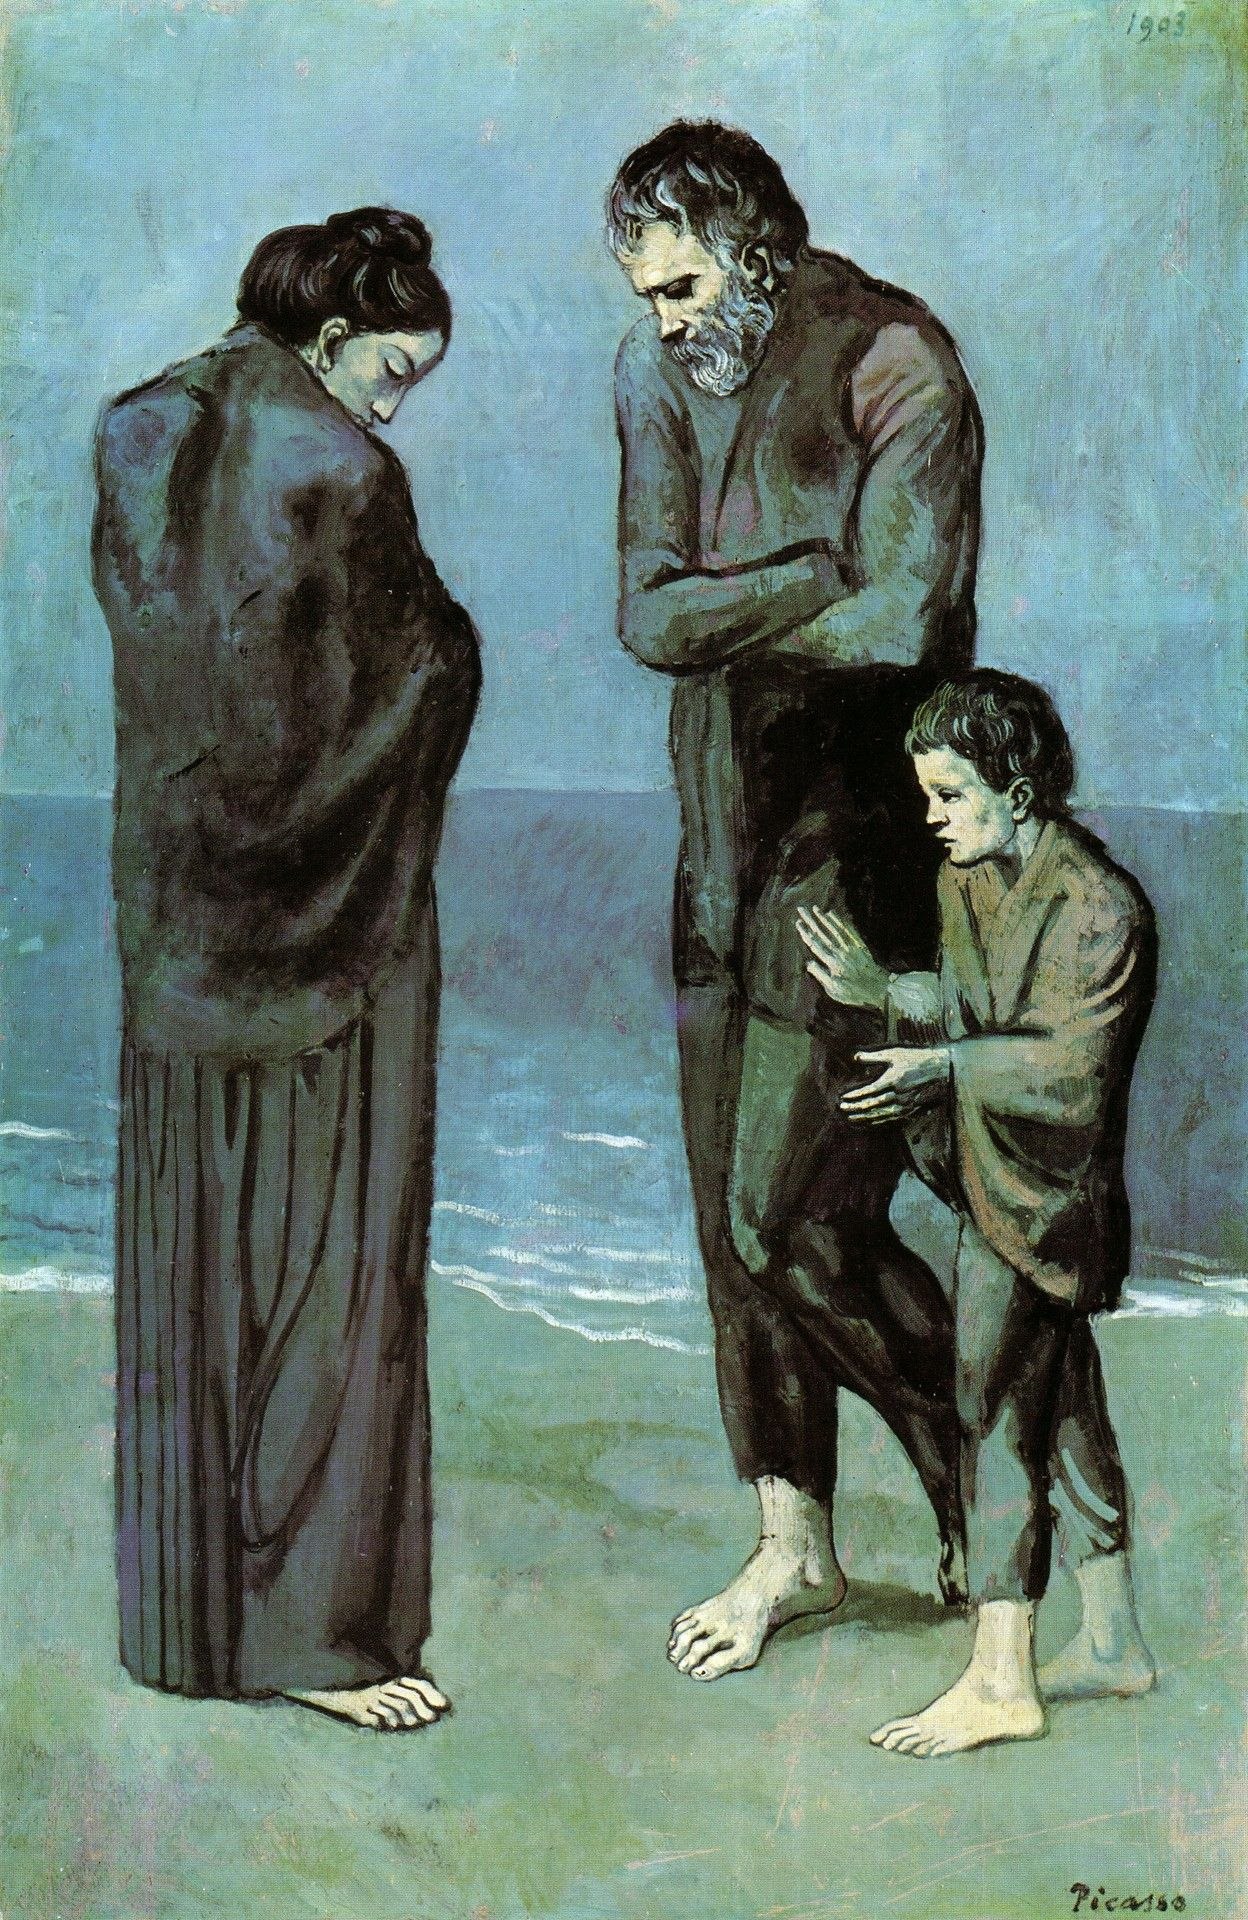 Pablo Picasso, The Tragedy